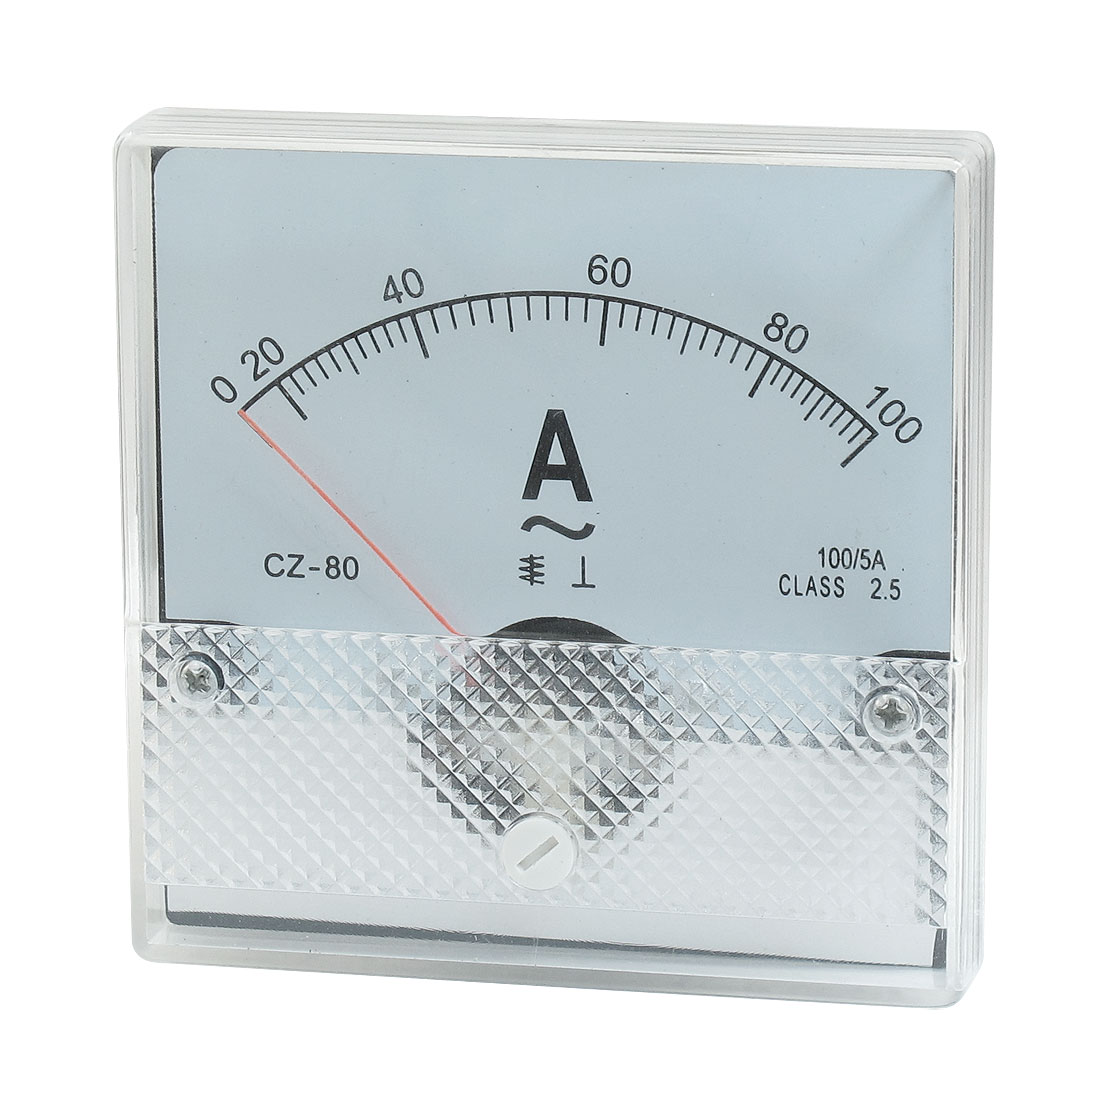 Class 2.5 Accuracy AC 0-100A Analog Panel Meter